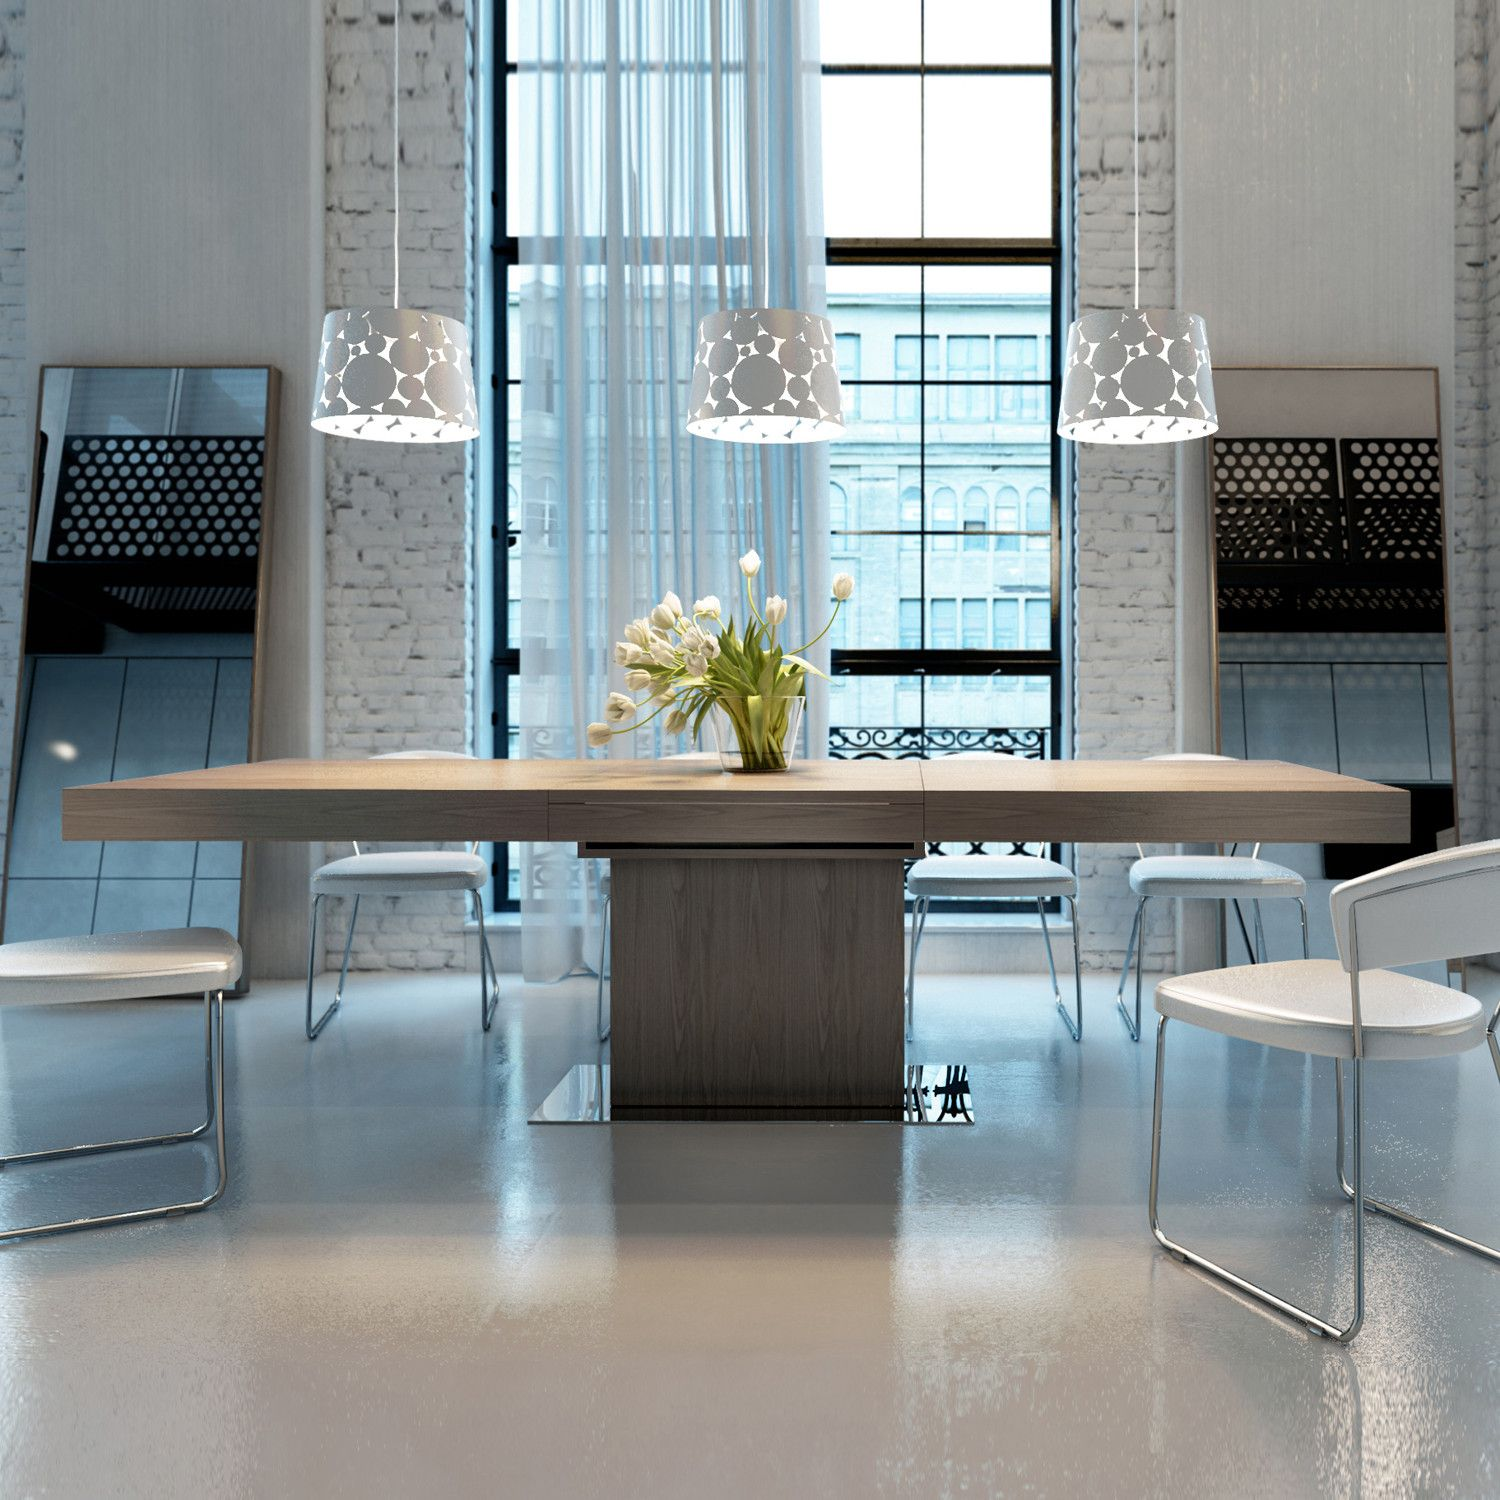 Modloft Astor Extendable Dining Table, Seats Up To 8 People. Available In  White, Wenge And Walnut, Modern Dining